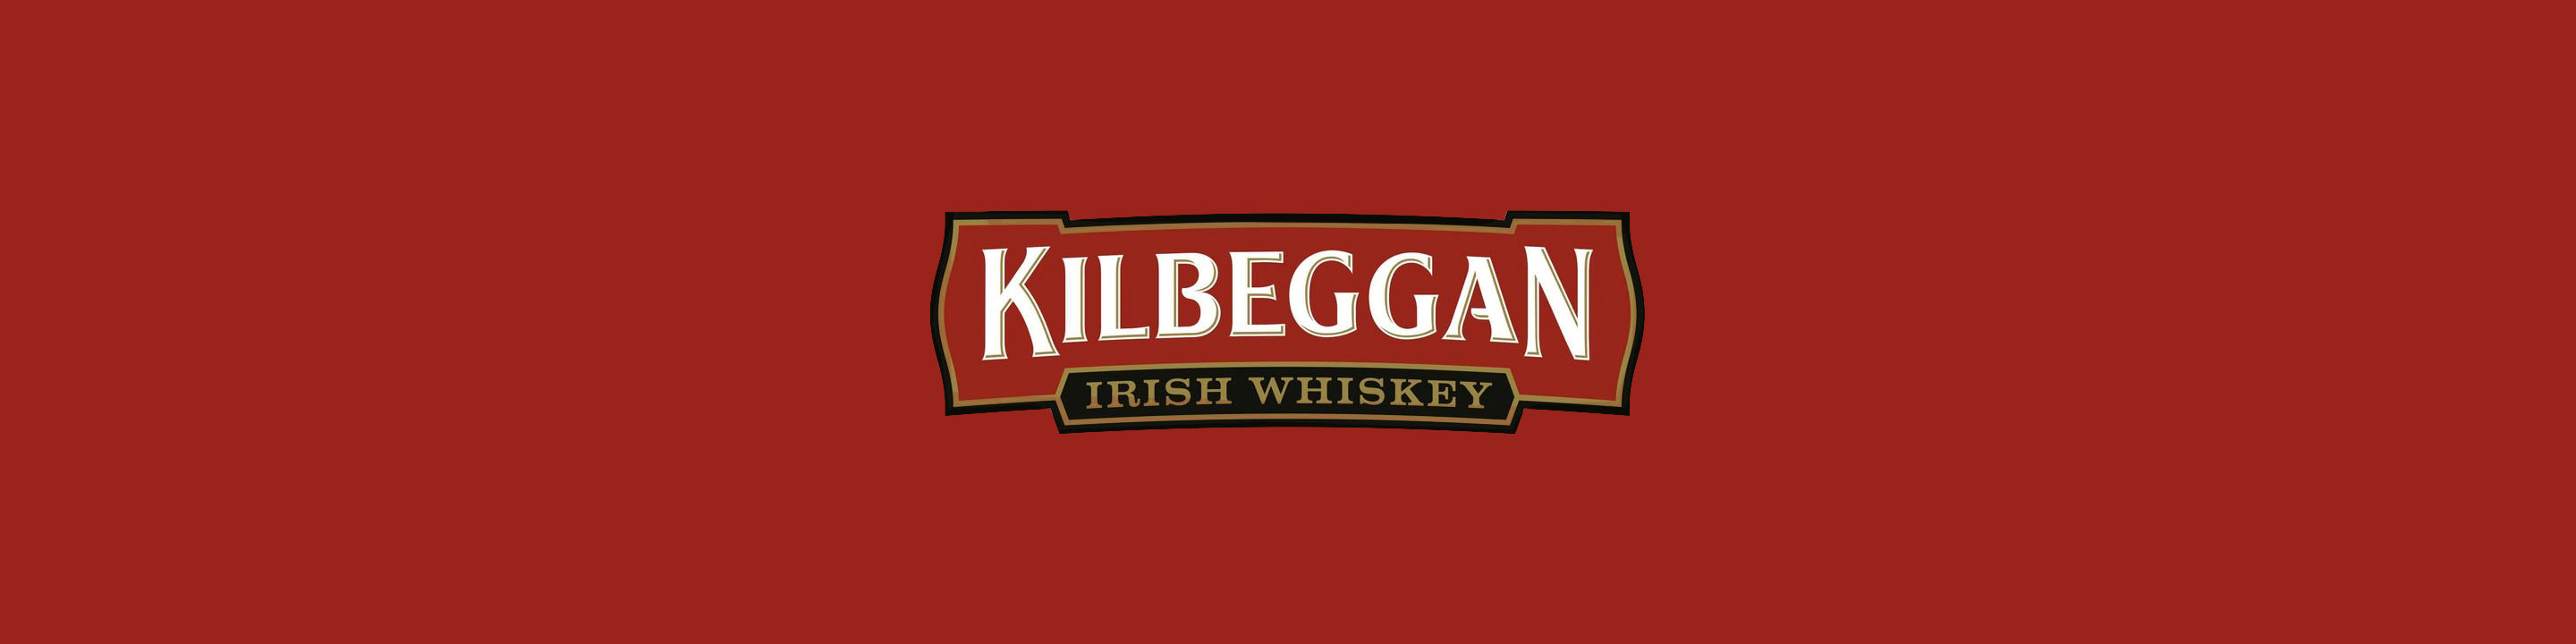 Blended with the finest grain and malt whiskeys, Kilbeggan® Irish Whiskey has a smooth, sweet taste and lovely malty finish. This warm amber-colored whiskey has the aroma of citrus, honey, and the sweetness of nuts and grain. On the palate, it's light and smooth with a blend of honey, malt, oak, pears, and spice flavors. Born in the oldest licensed distillery in Ireland, Kilbeggan® is distilled in a 180-year-old pot still (the oldest in Ireland) and aged at least three years and a day in bourbon barrels.   Buy Kilbeggan online now from nearby liquor stores via Minibar Delivery.